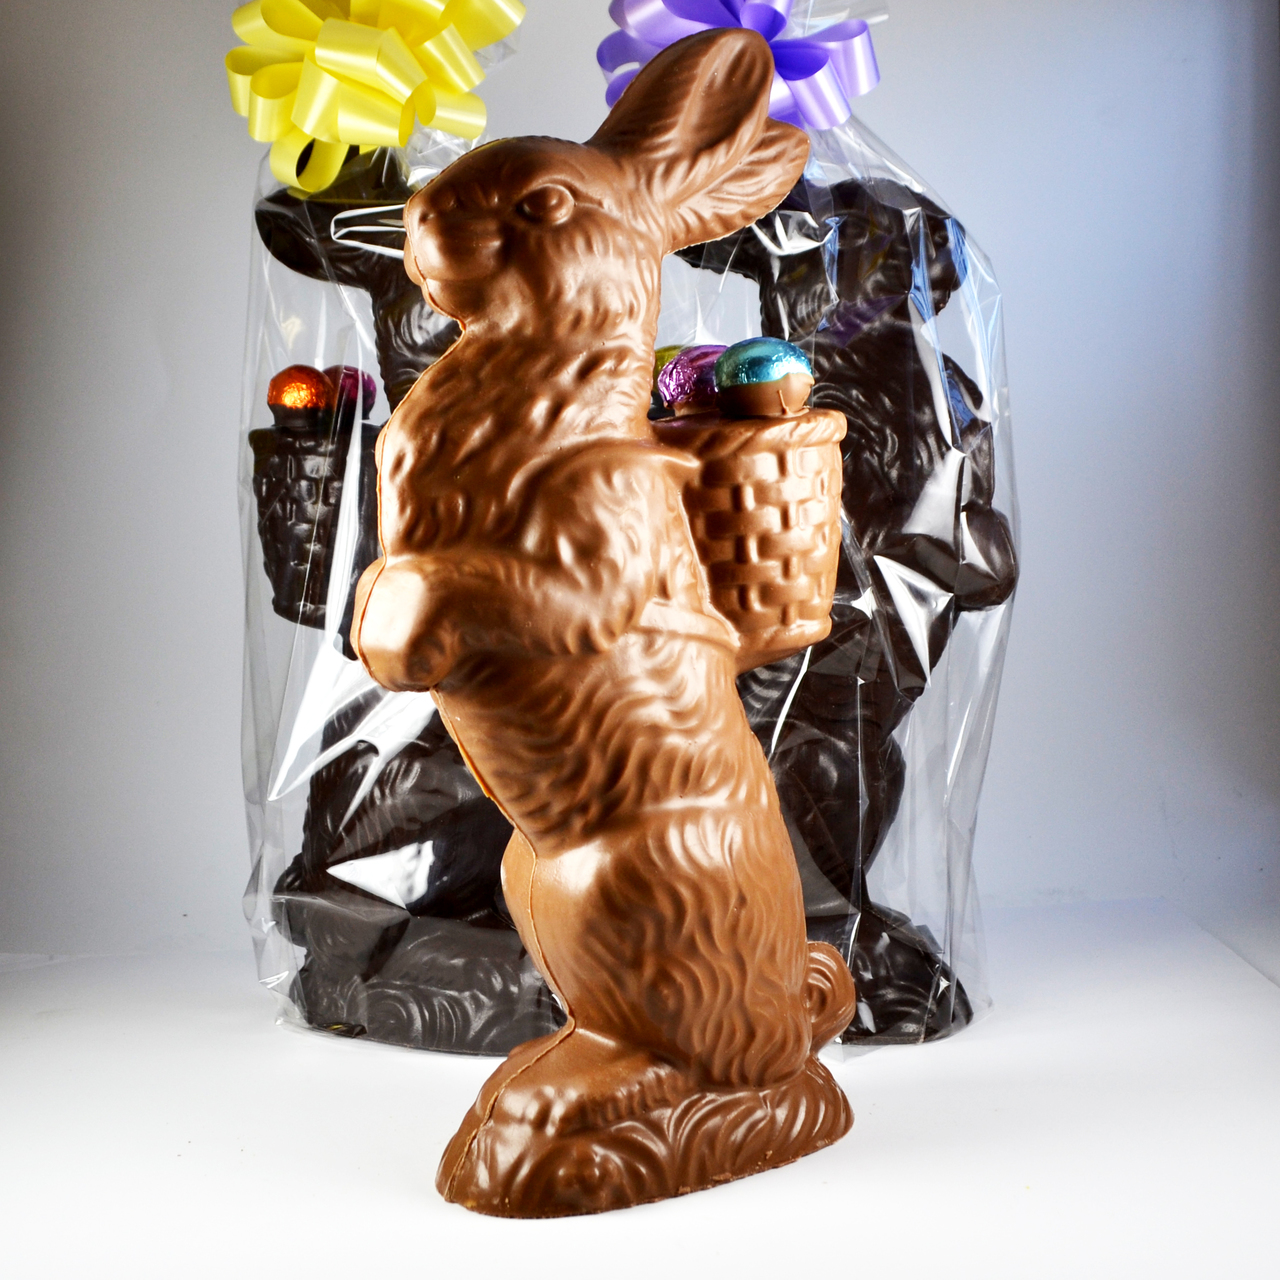 Large Proud Chocolate Bunny - The Chocolatier